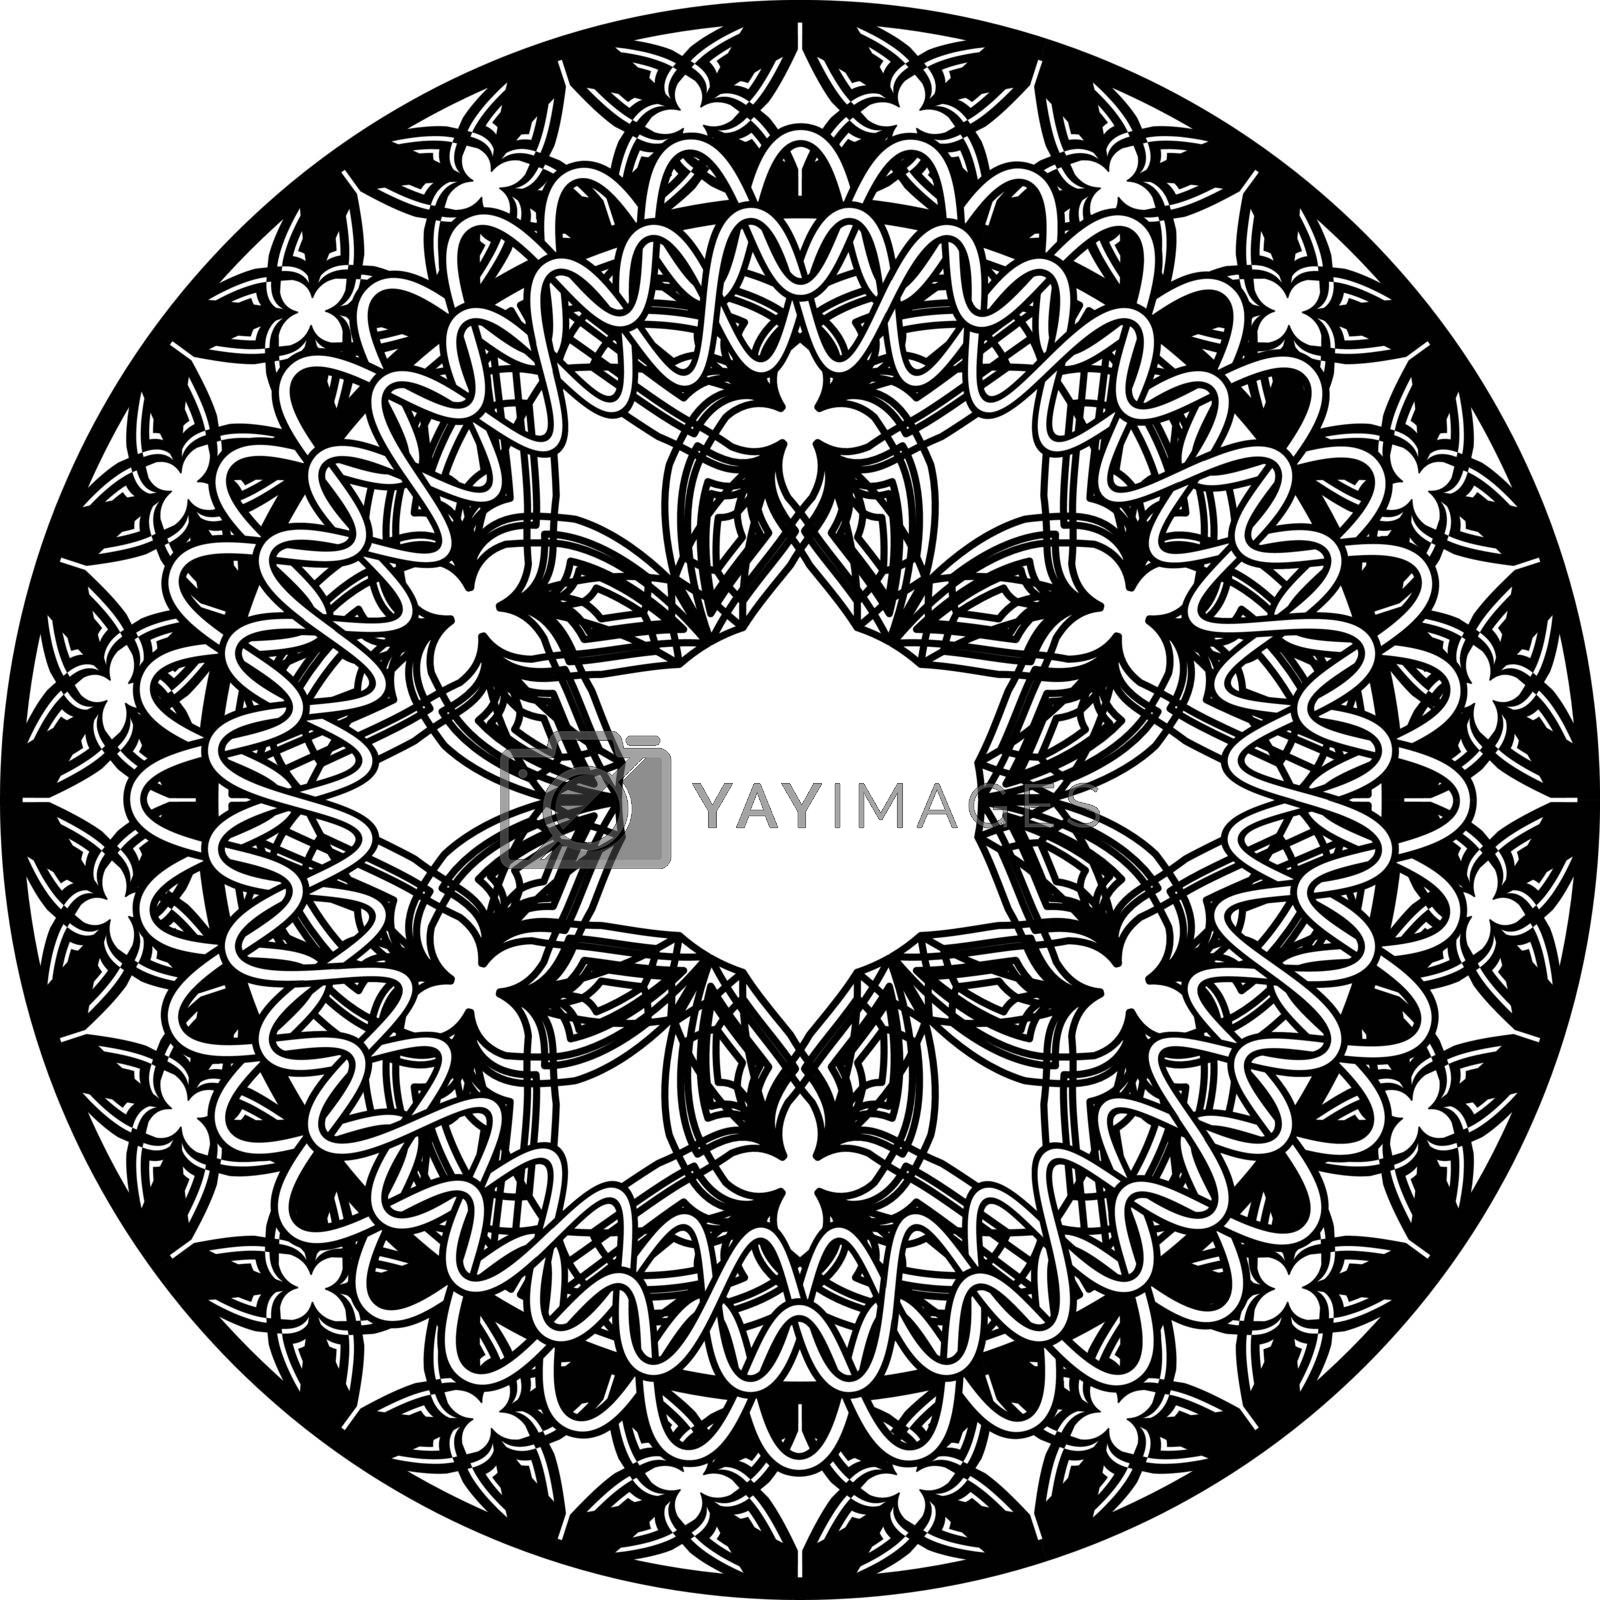 abstract monochrome mandala in tribal style by paranoido